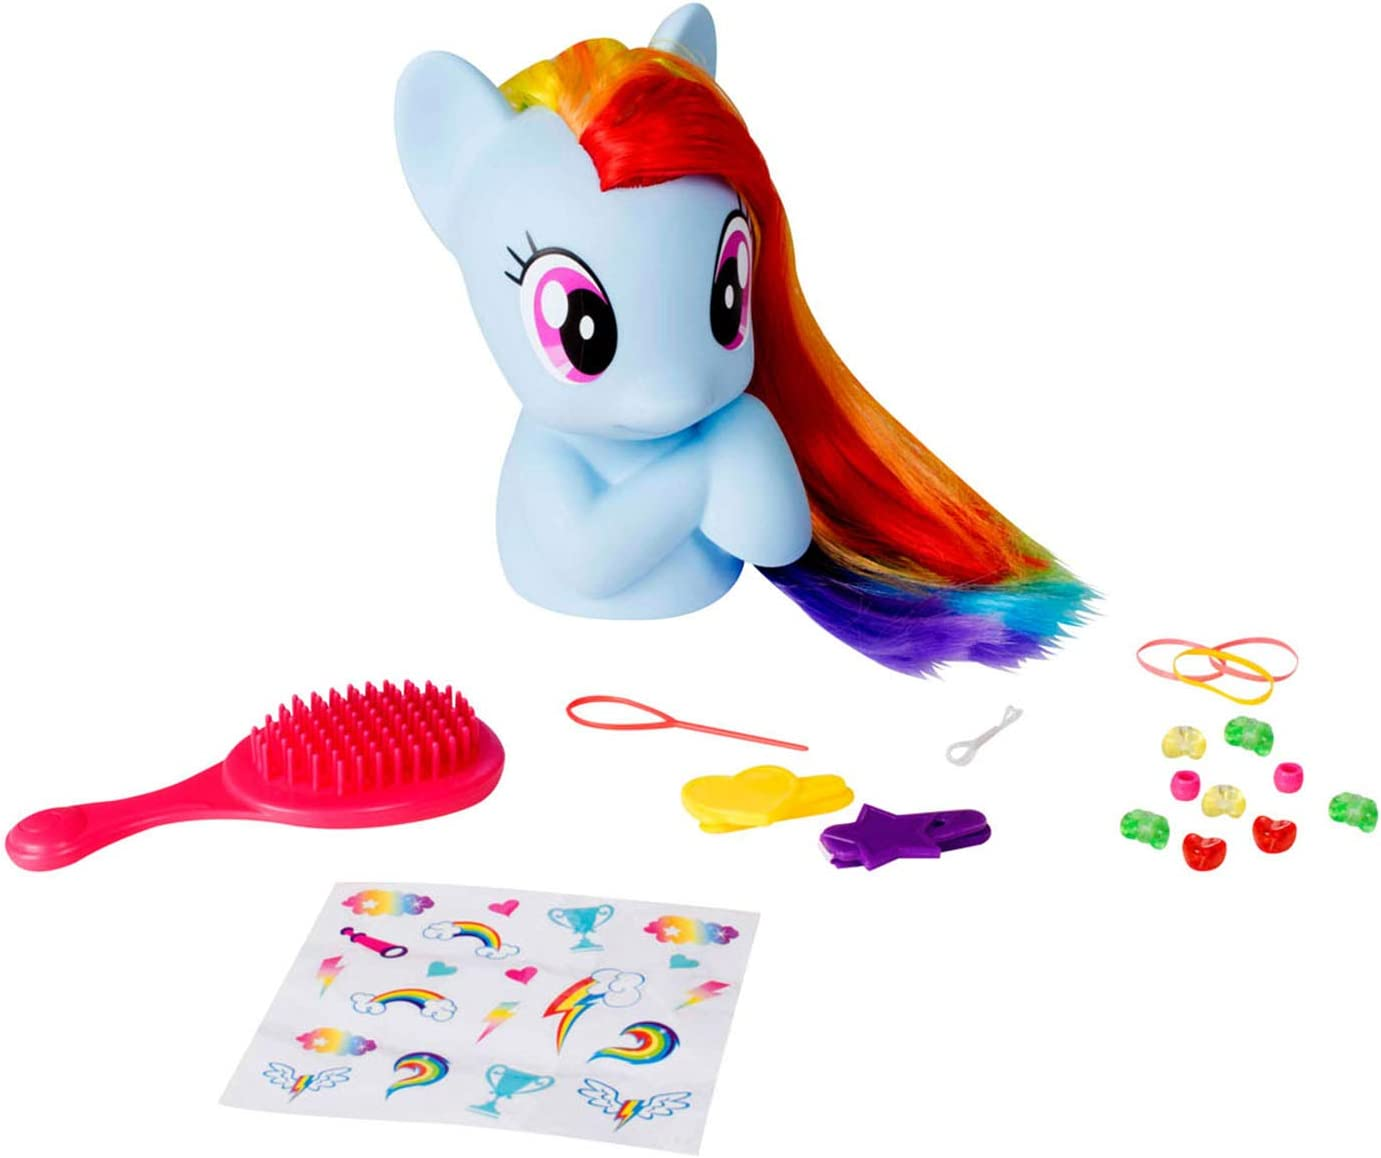 My Little Pony Styling Head Hairstyle Head Rainbow Dash With Hair Brush Stickers And Accessories Amazon De Spielzeug